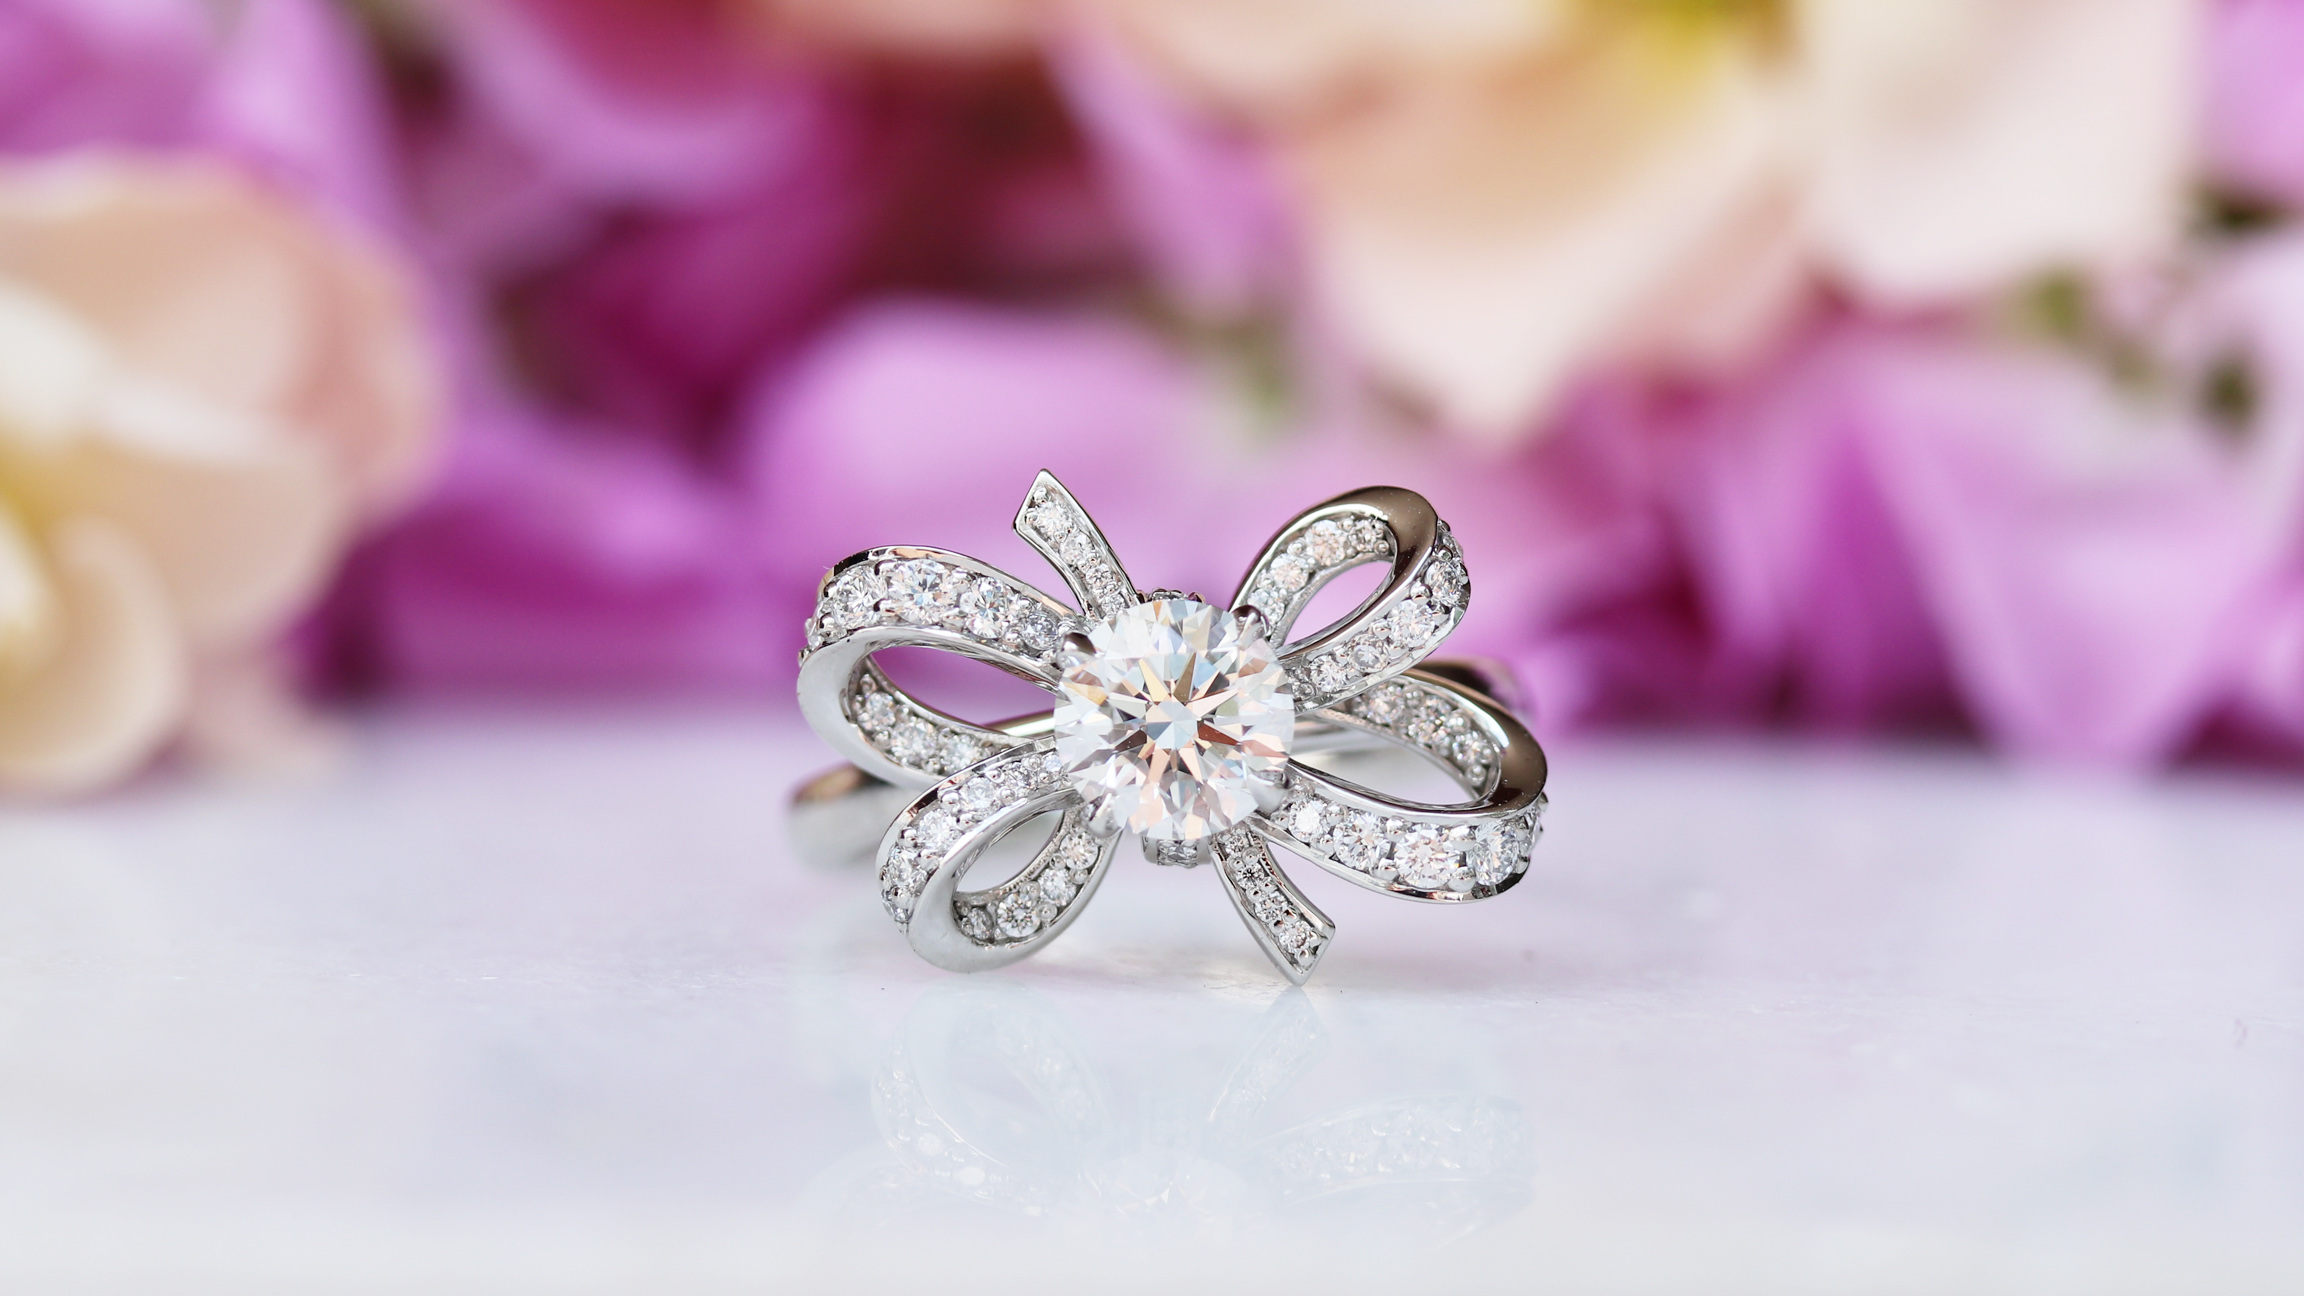 custom-engagement-ring-lab-diamond-white-gold-bow.jpg